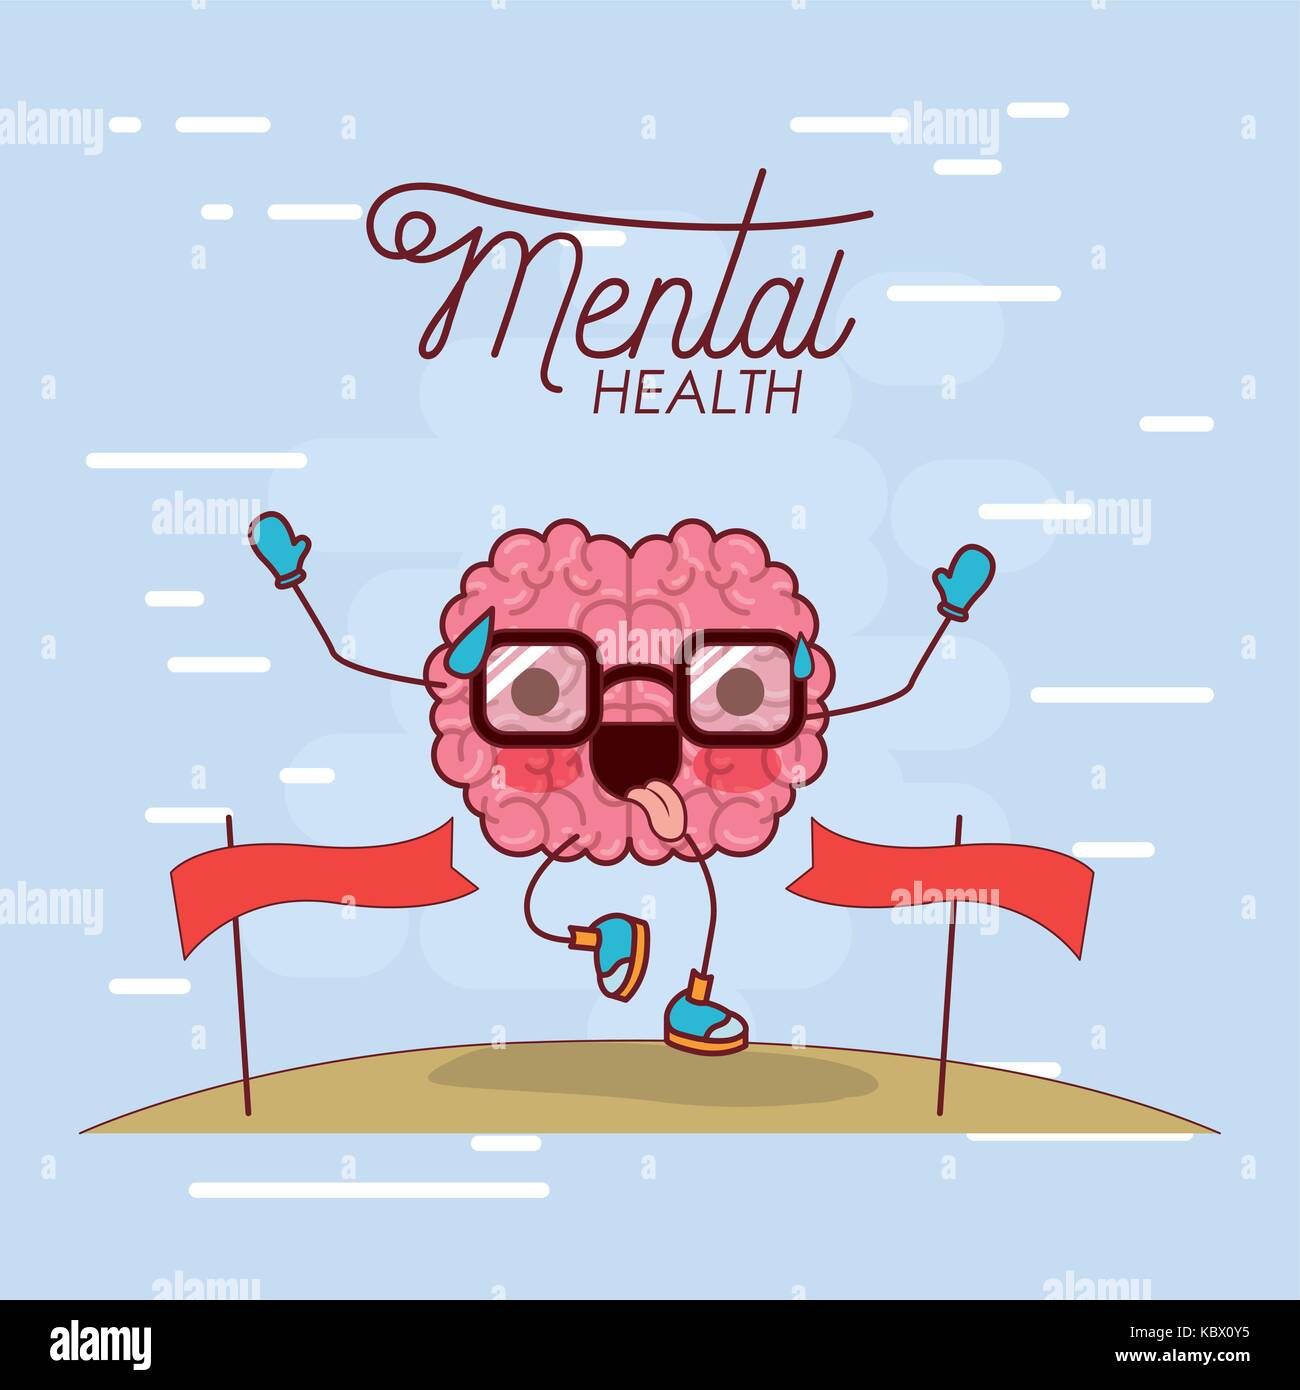 mental health poster of brain cartoon with glasses running and pass finishing line and background light blue - Stock Image